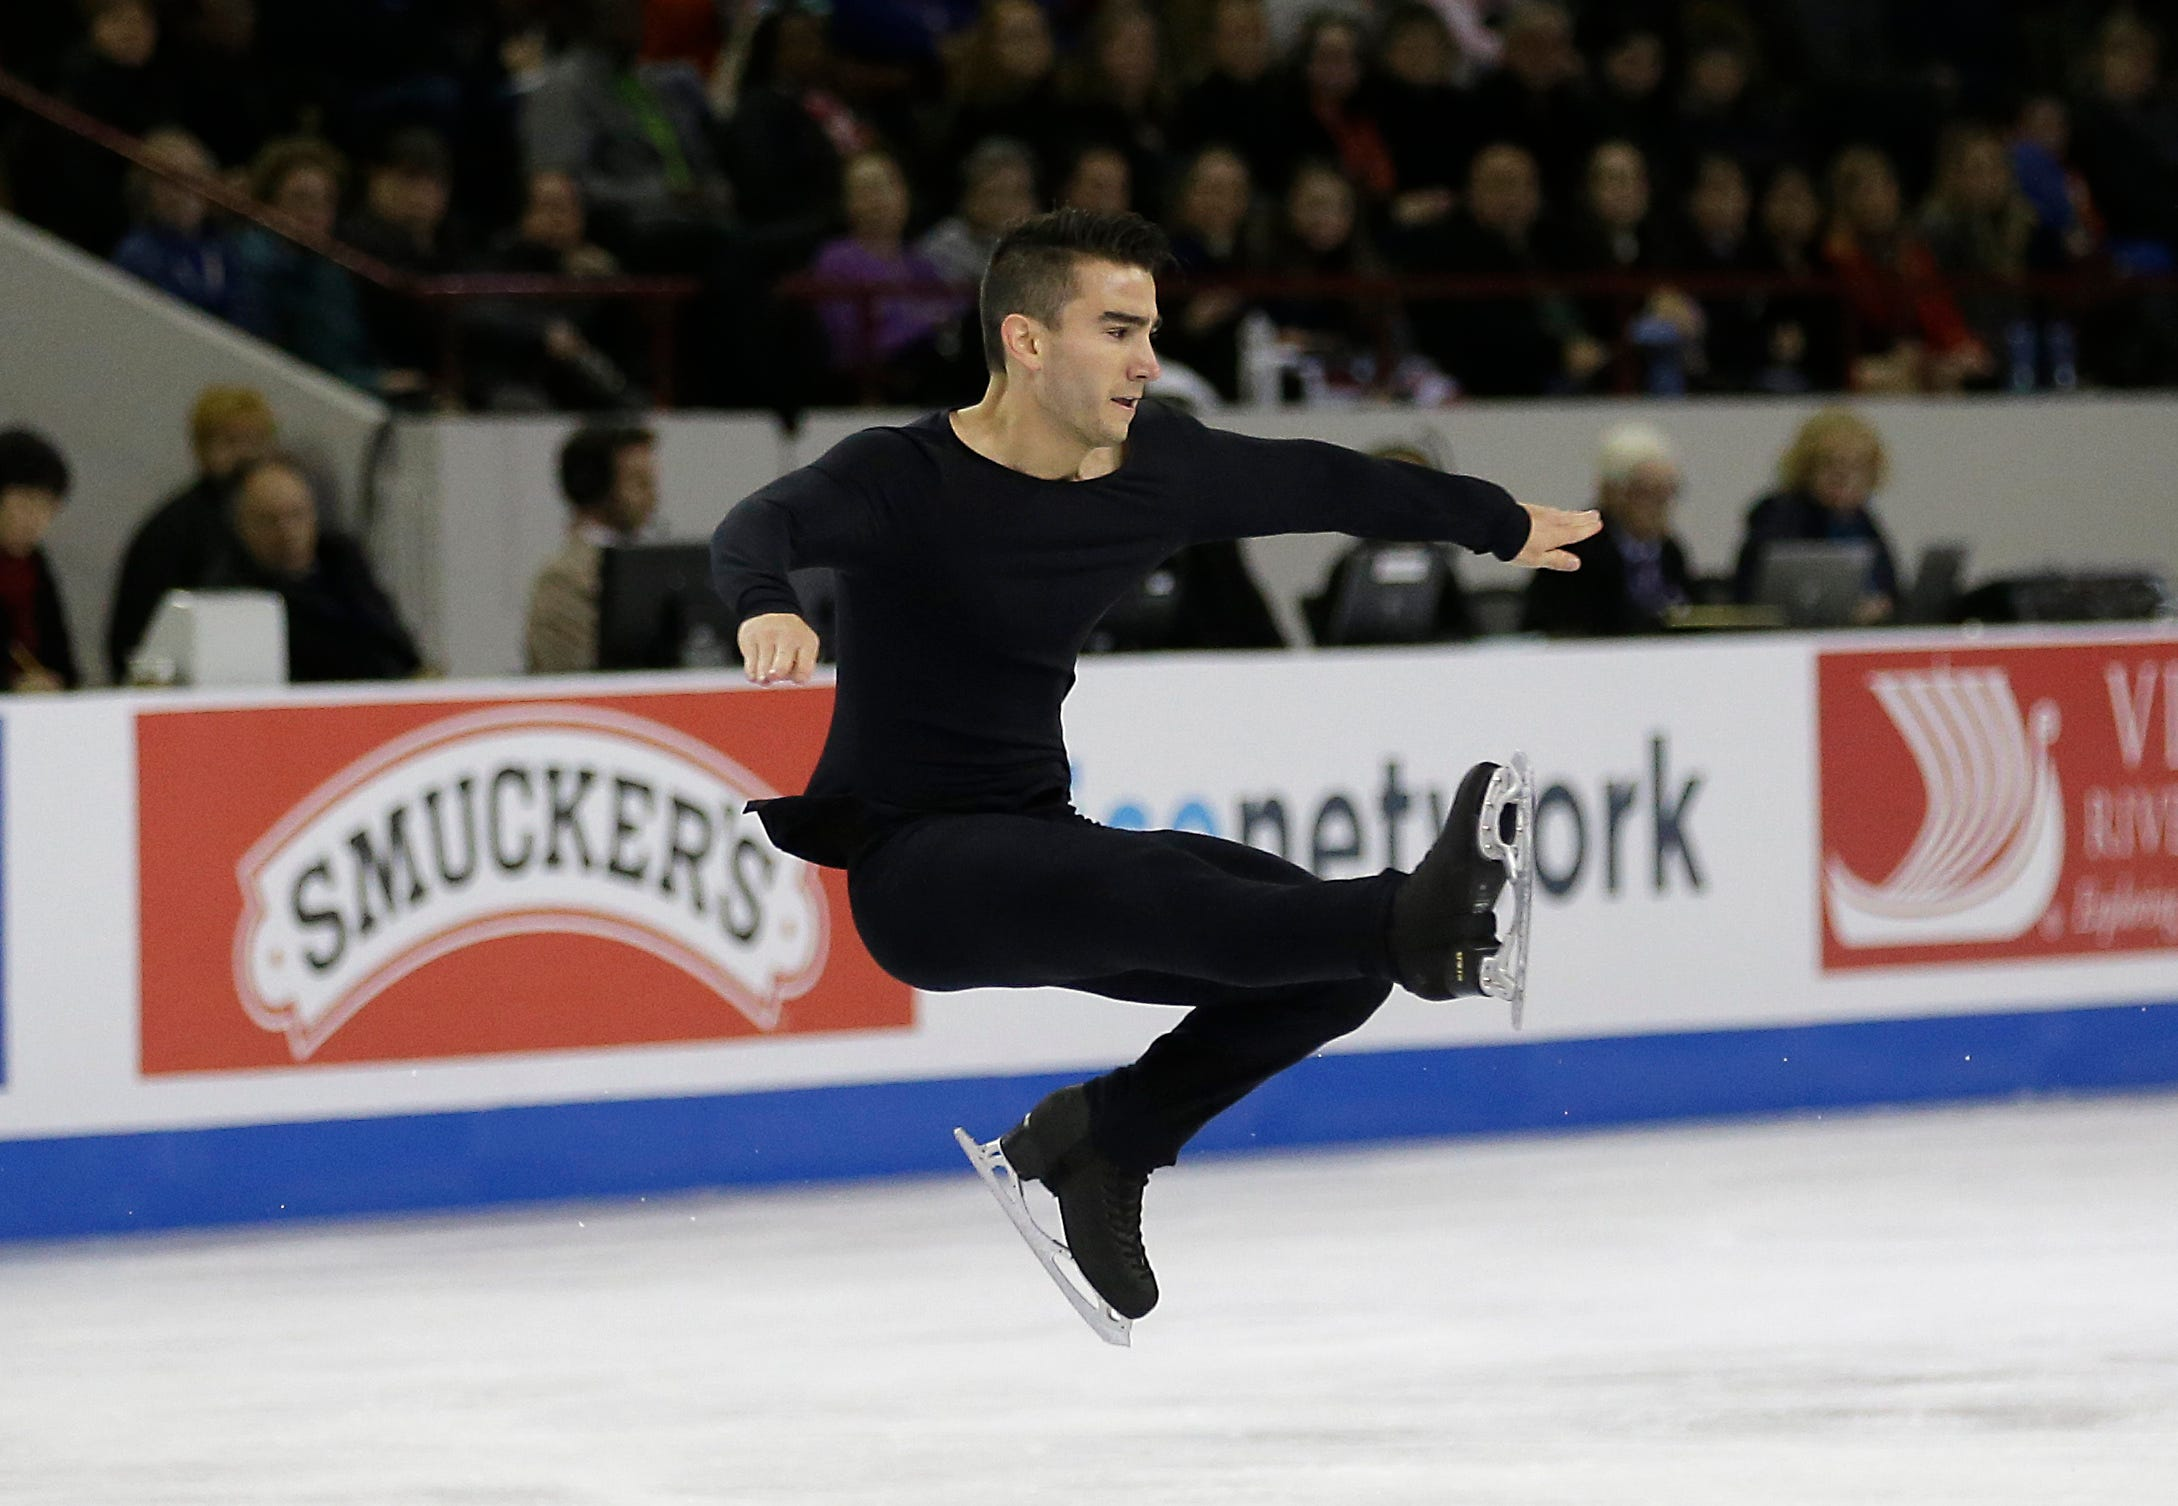 Max Aaron returns to form, wins Skate America